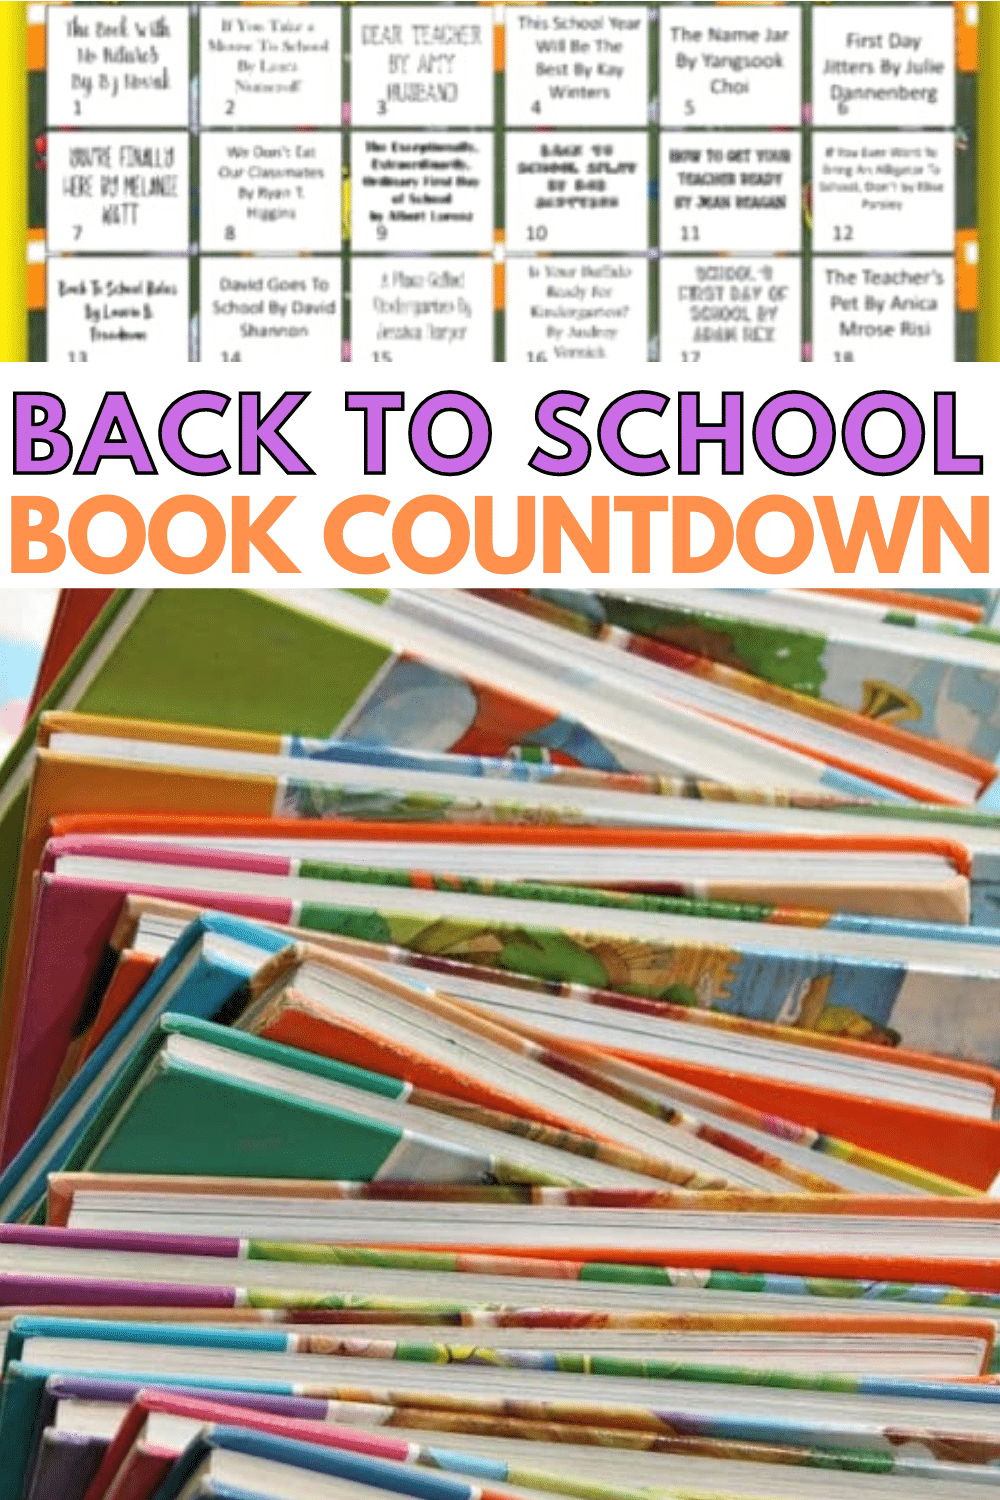 This printable back to school book countdown calendar is perfect for children starting kindergarten. Reading books about school will make them feel at ease. #reading #printables #backtoschool via @wondermomwannab